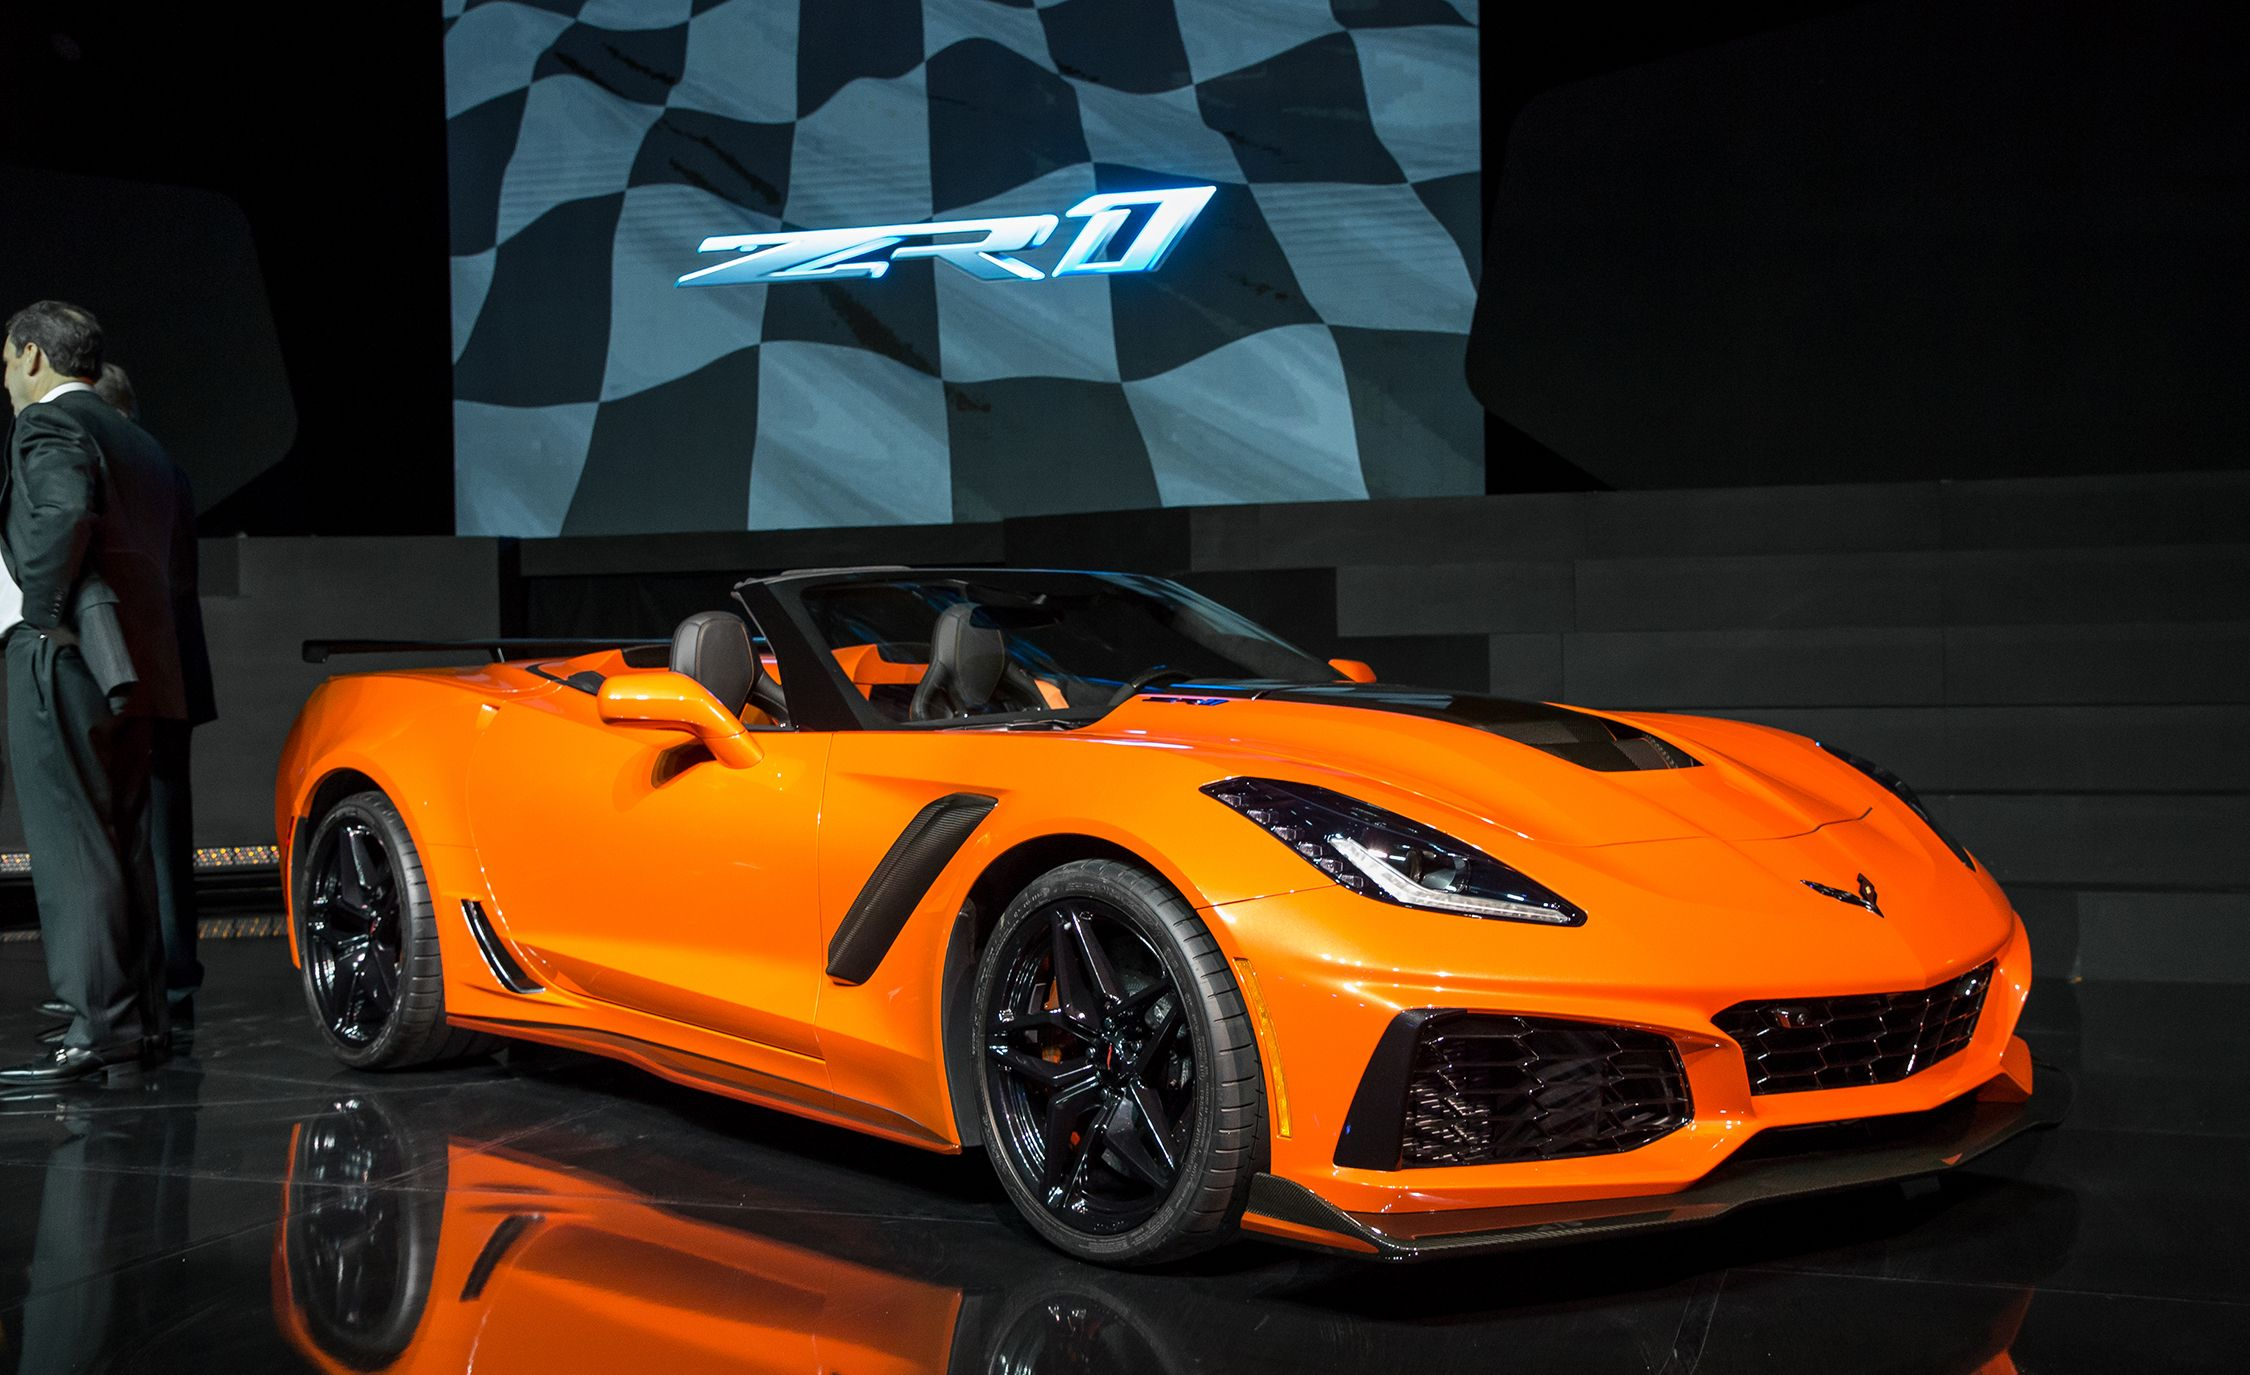 2019 Chevrolet Corvette Zr1 Convertible Extreme And Extroverted